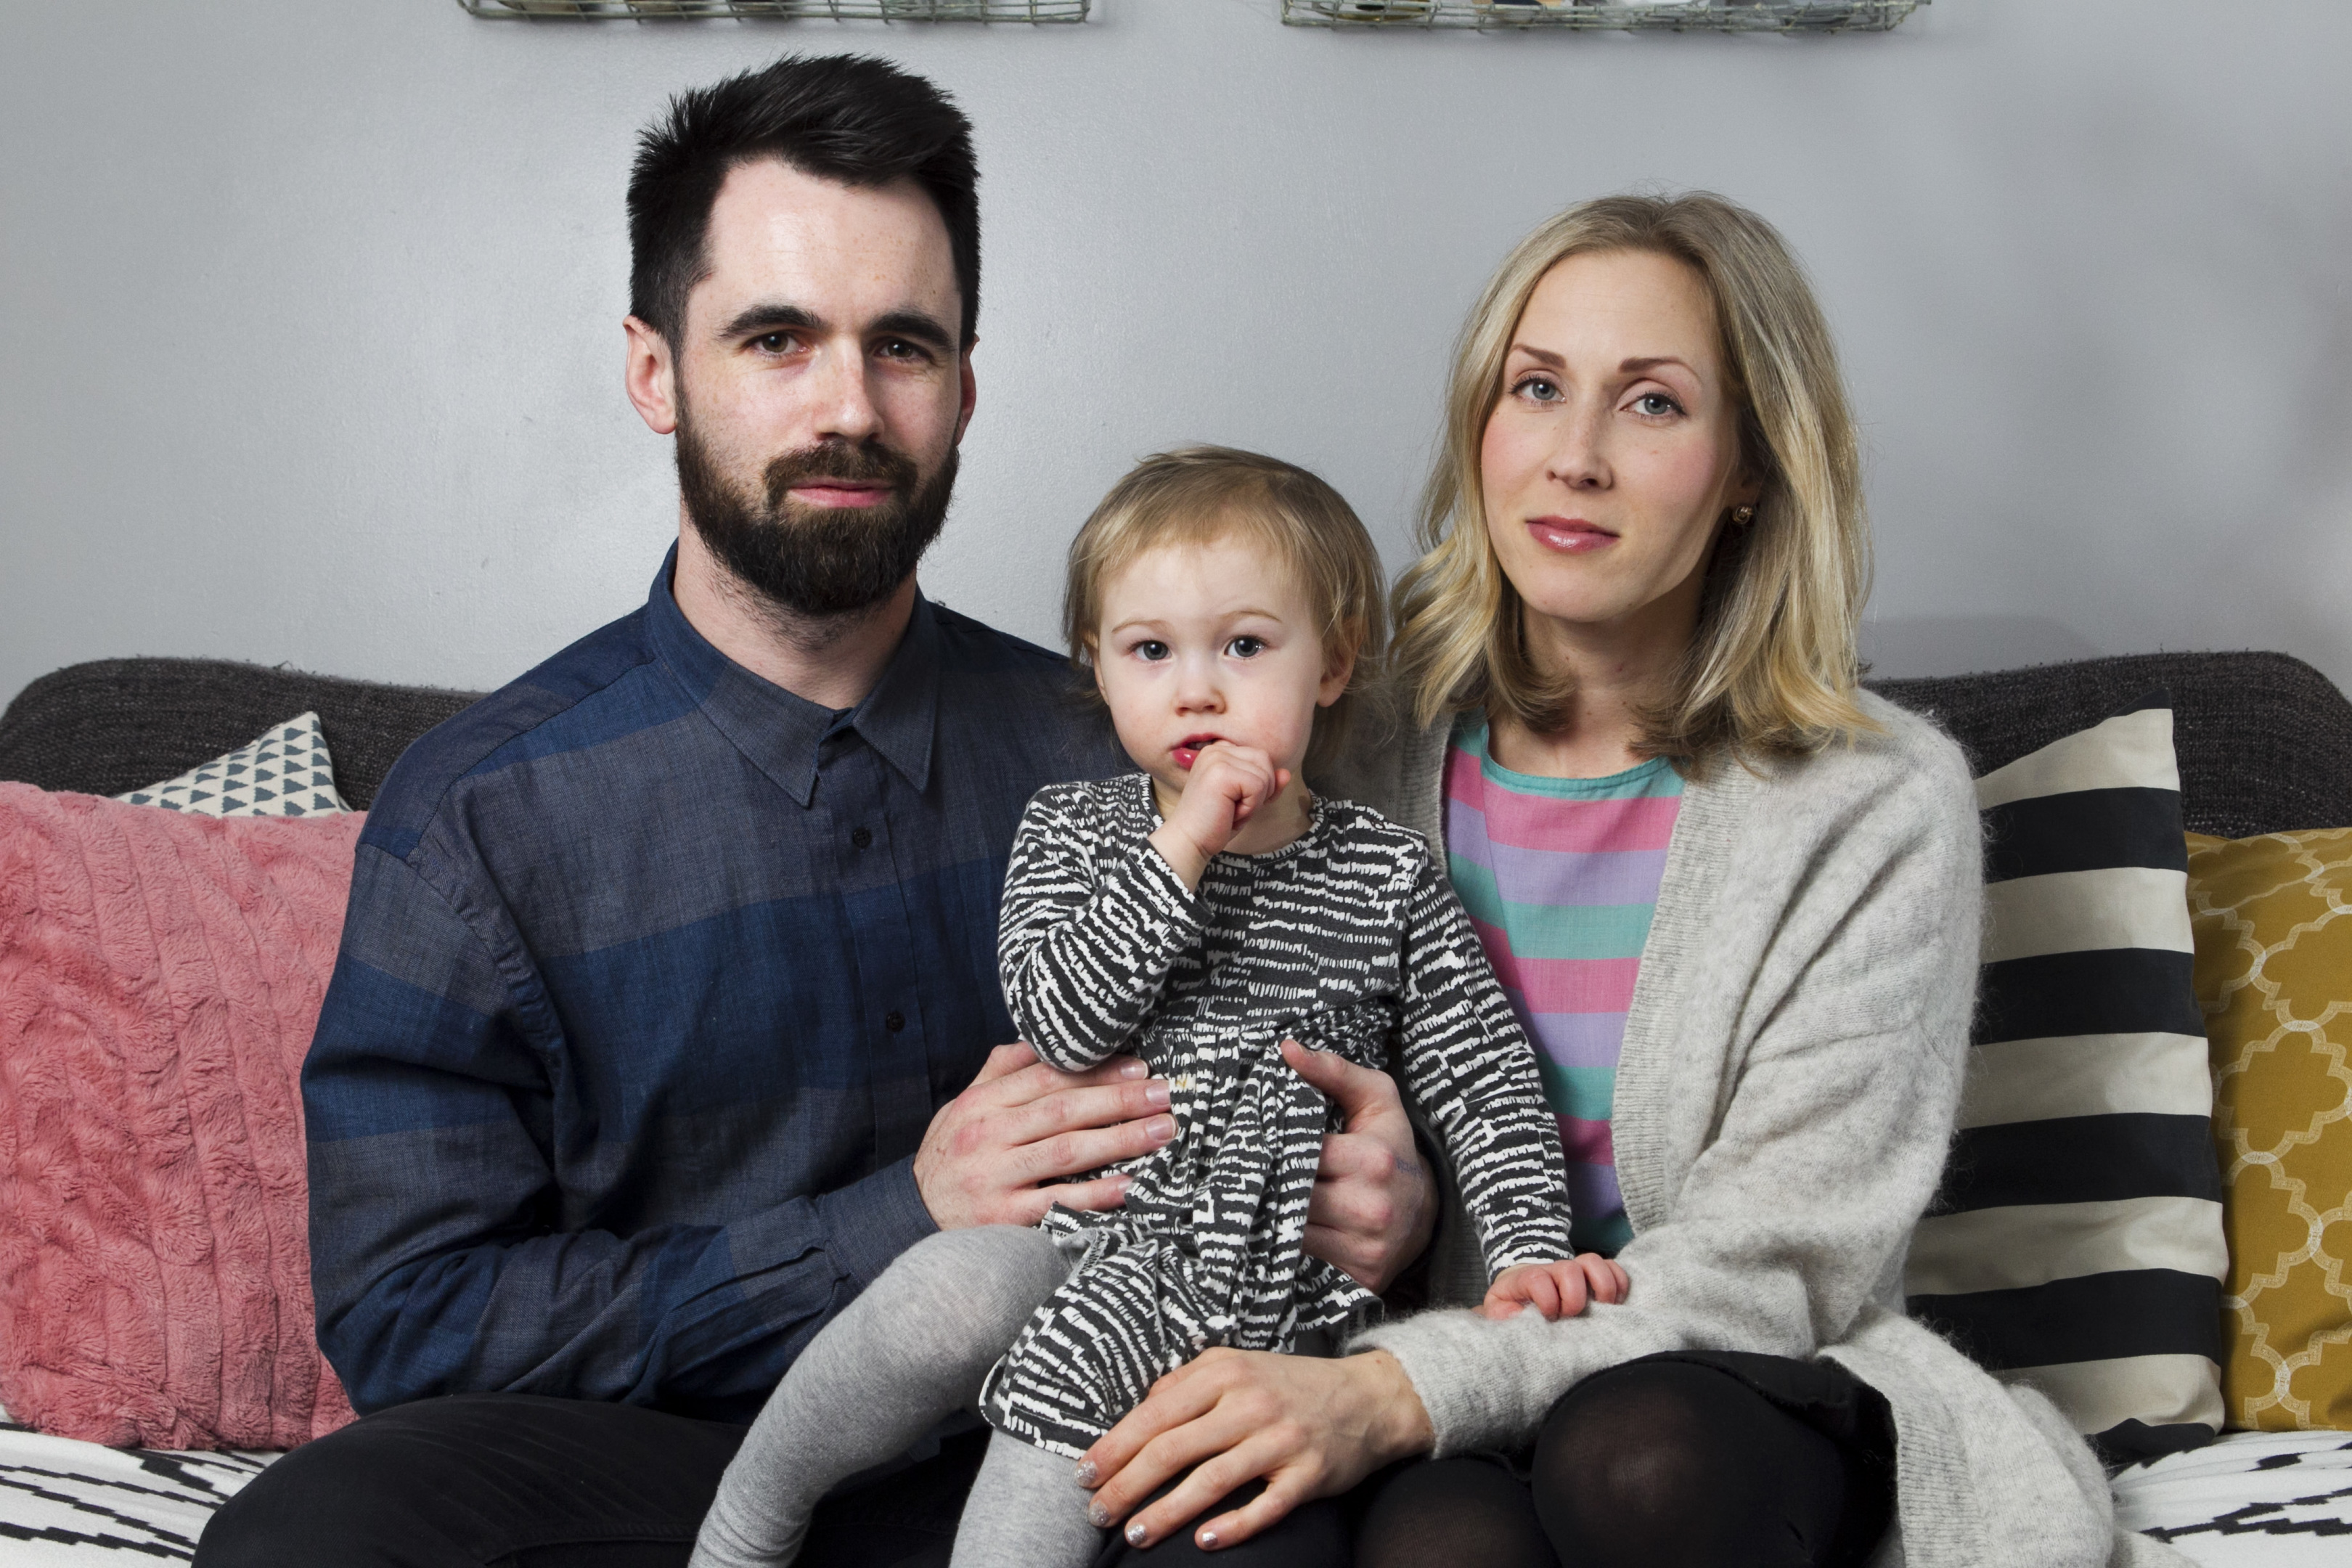 Matthew and Nina Aikas-Adam, and their daughter, Lana (Andrew Cawley / DC Thomson)